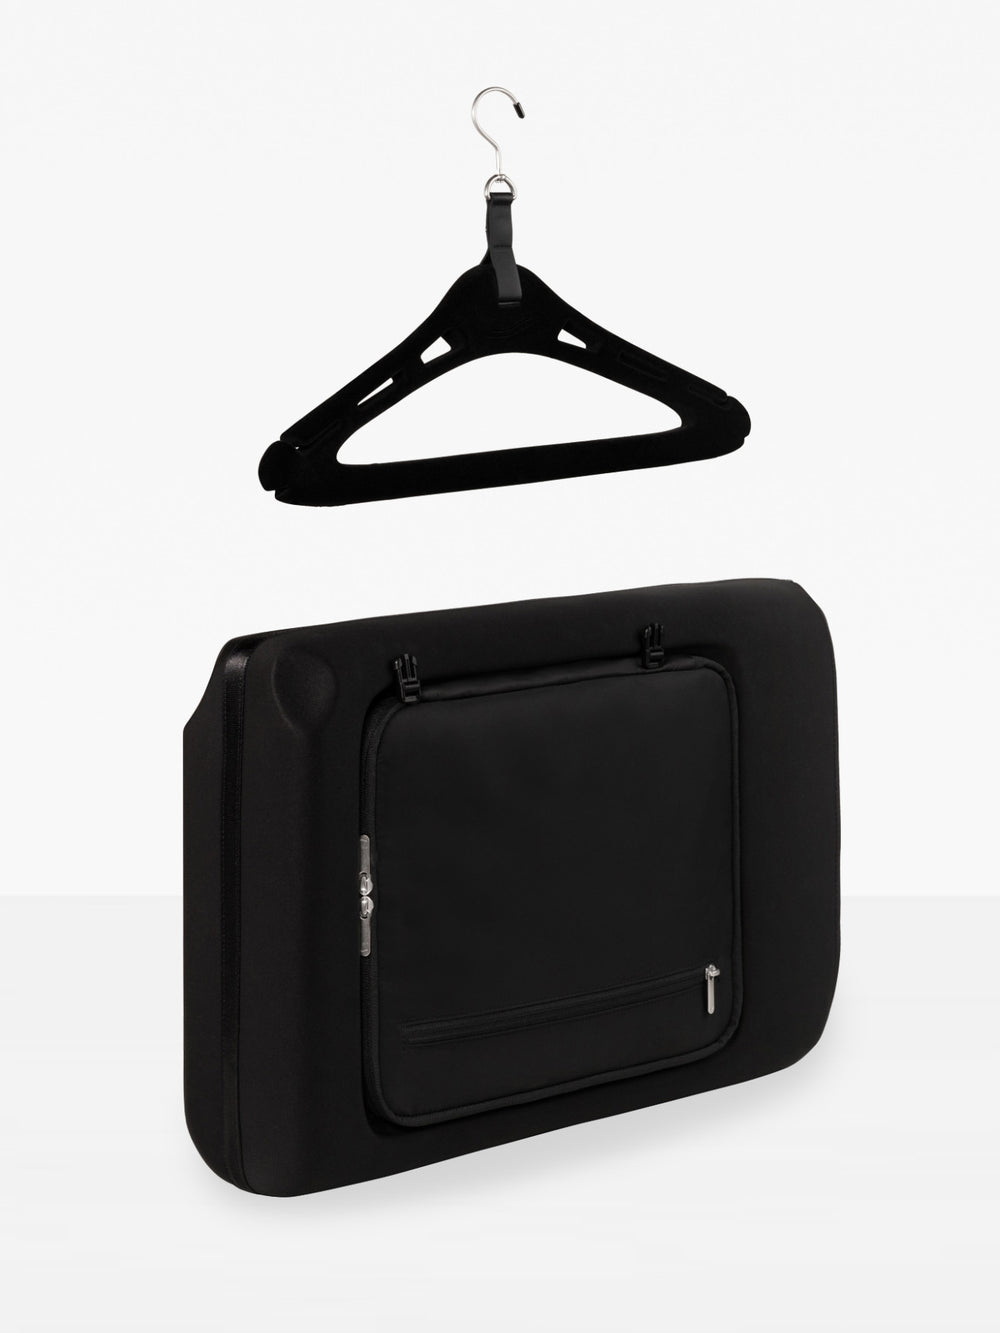 avant zero crease luggage insert with hanger